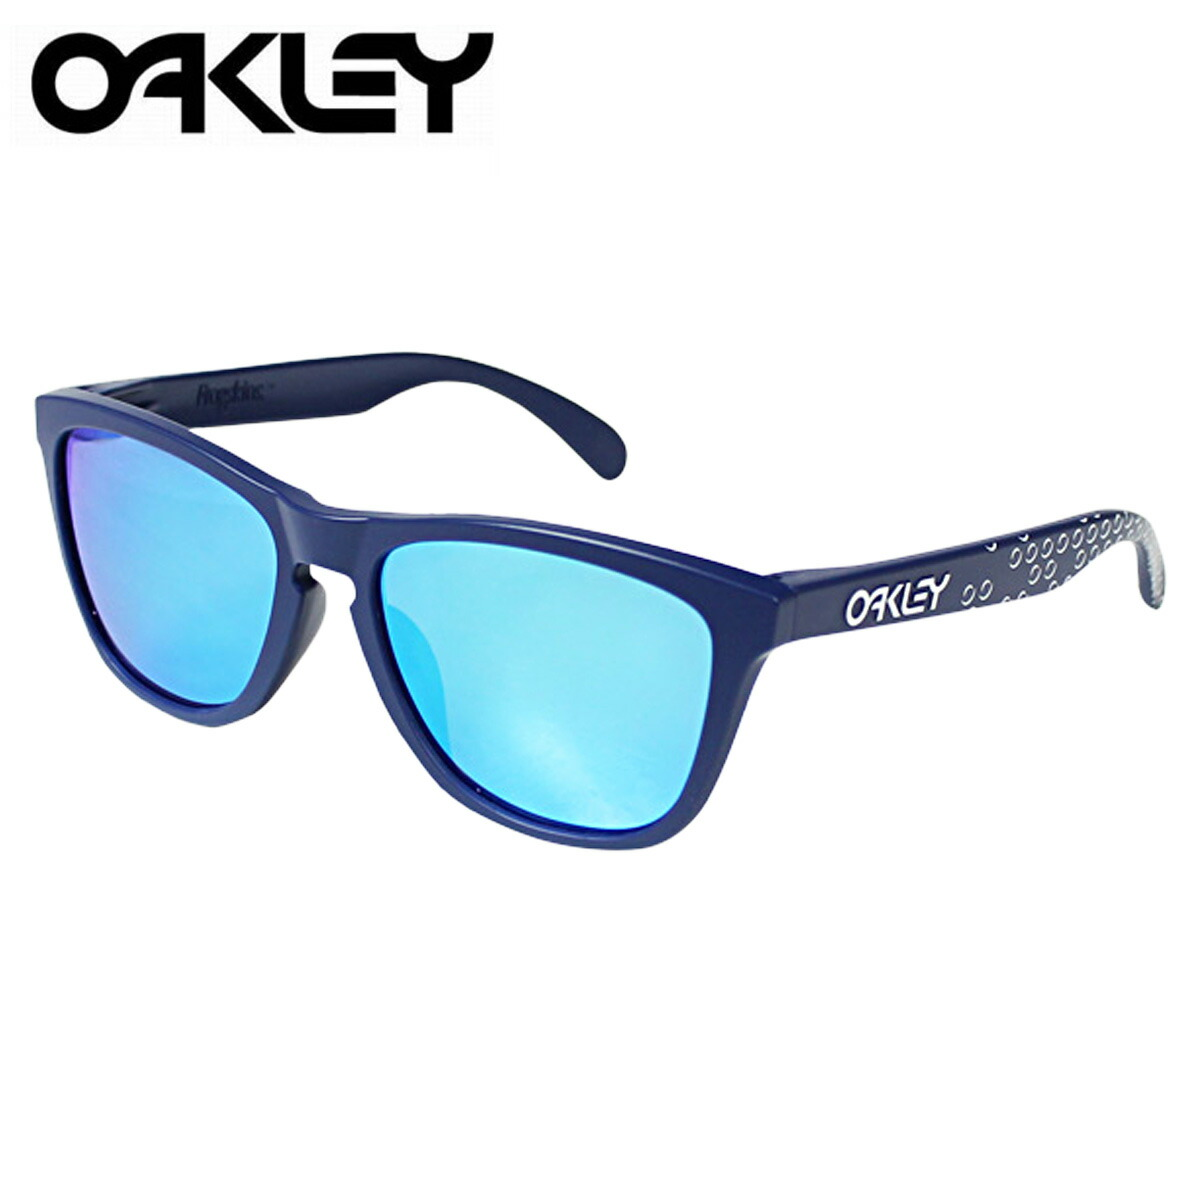 oakley glasses stock  oakley oakley sunglasses frogskins asian fit frog skin mens womens glasses asian fitting oo9245 22 blue x safire iridium unisex